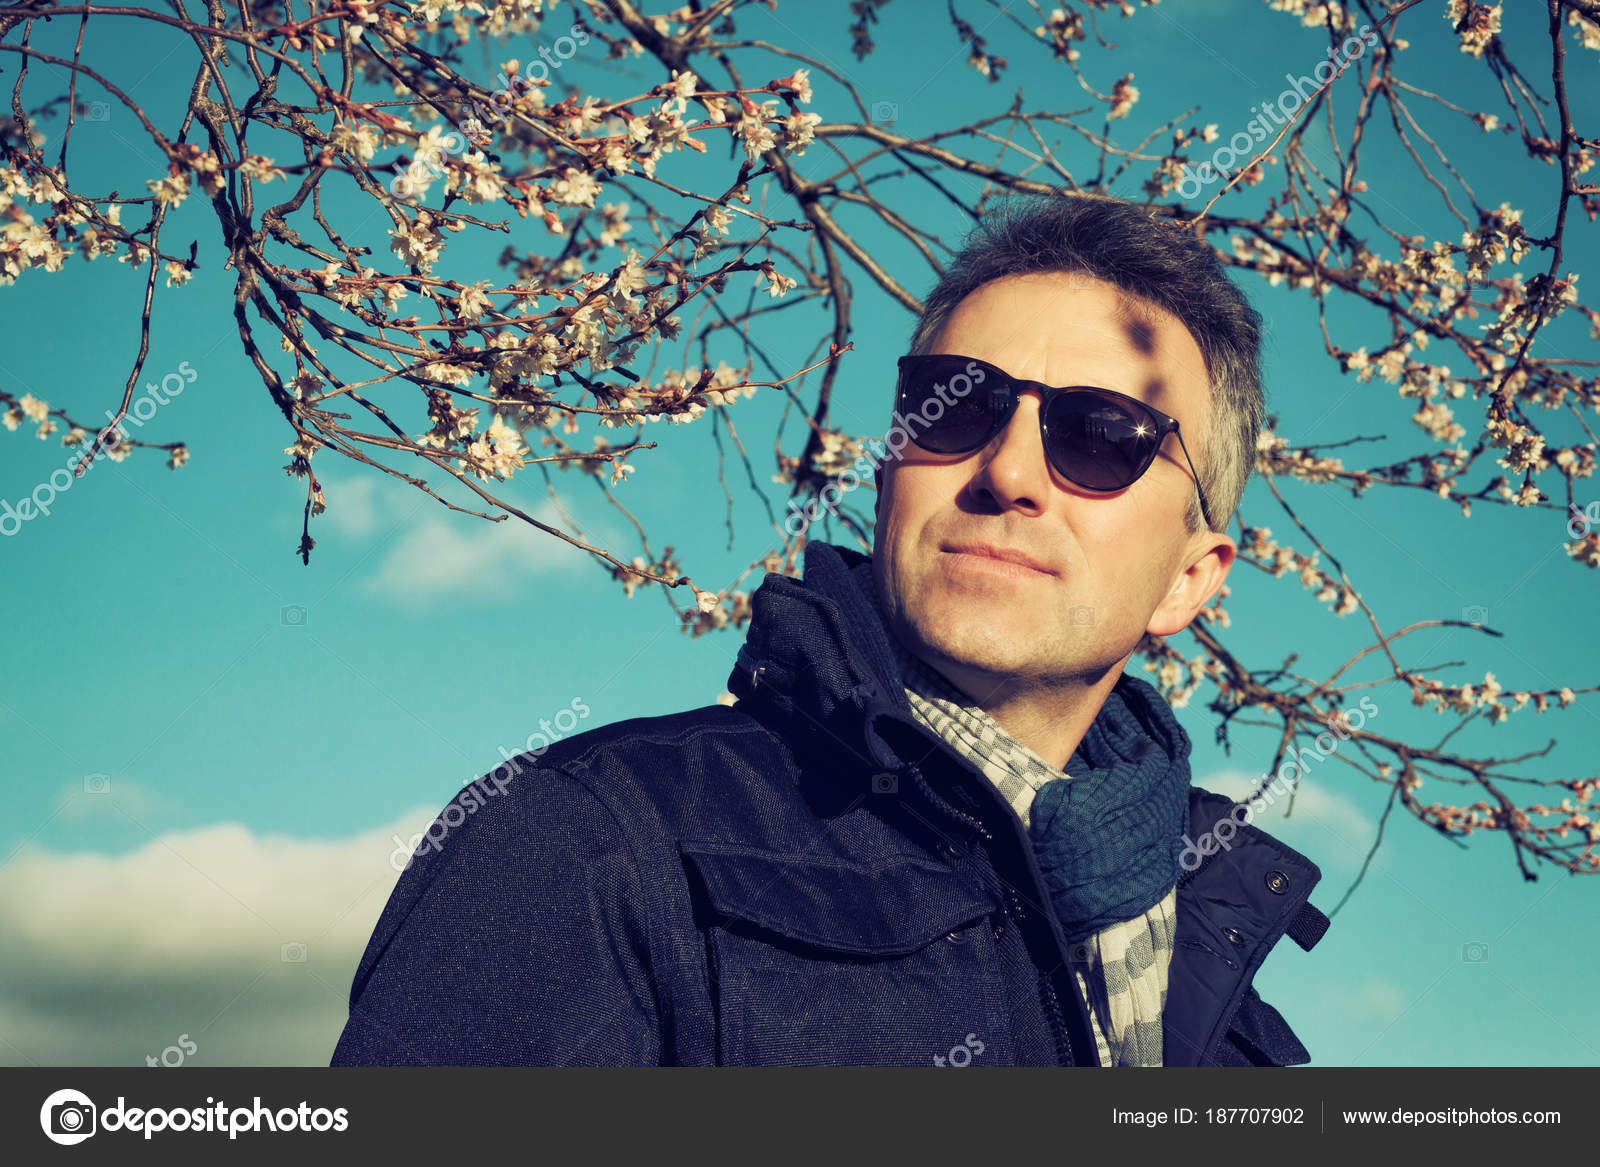 Handsome Man Outdoor Spring Male Portrait Attractive Confident Middle Aged Posing Over Blooming Tree And Blue Sky Photo By Khorzhevska